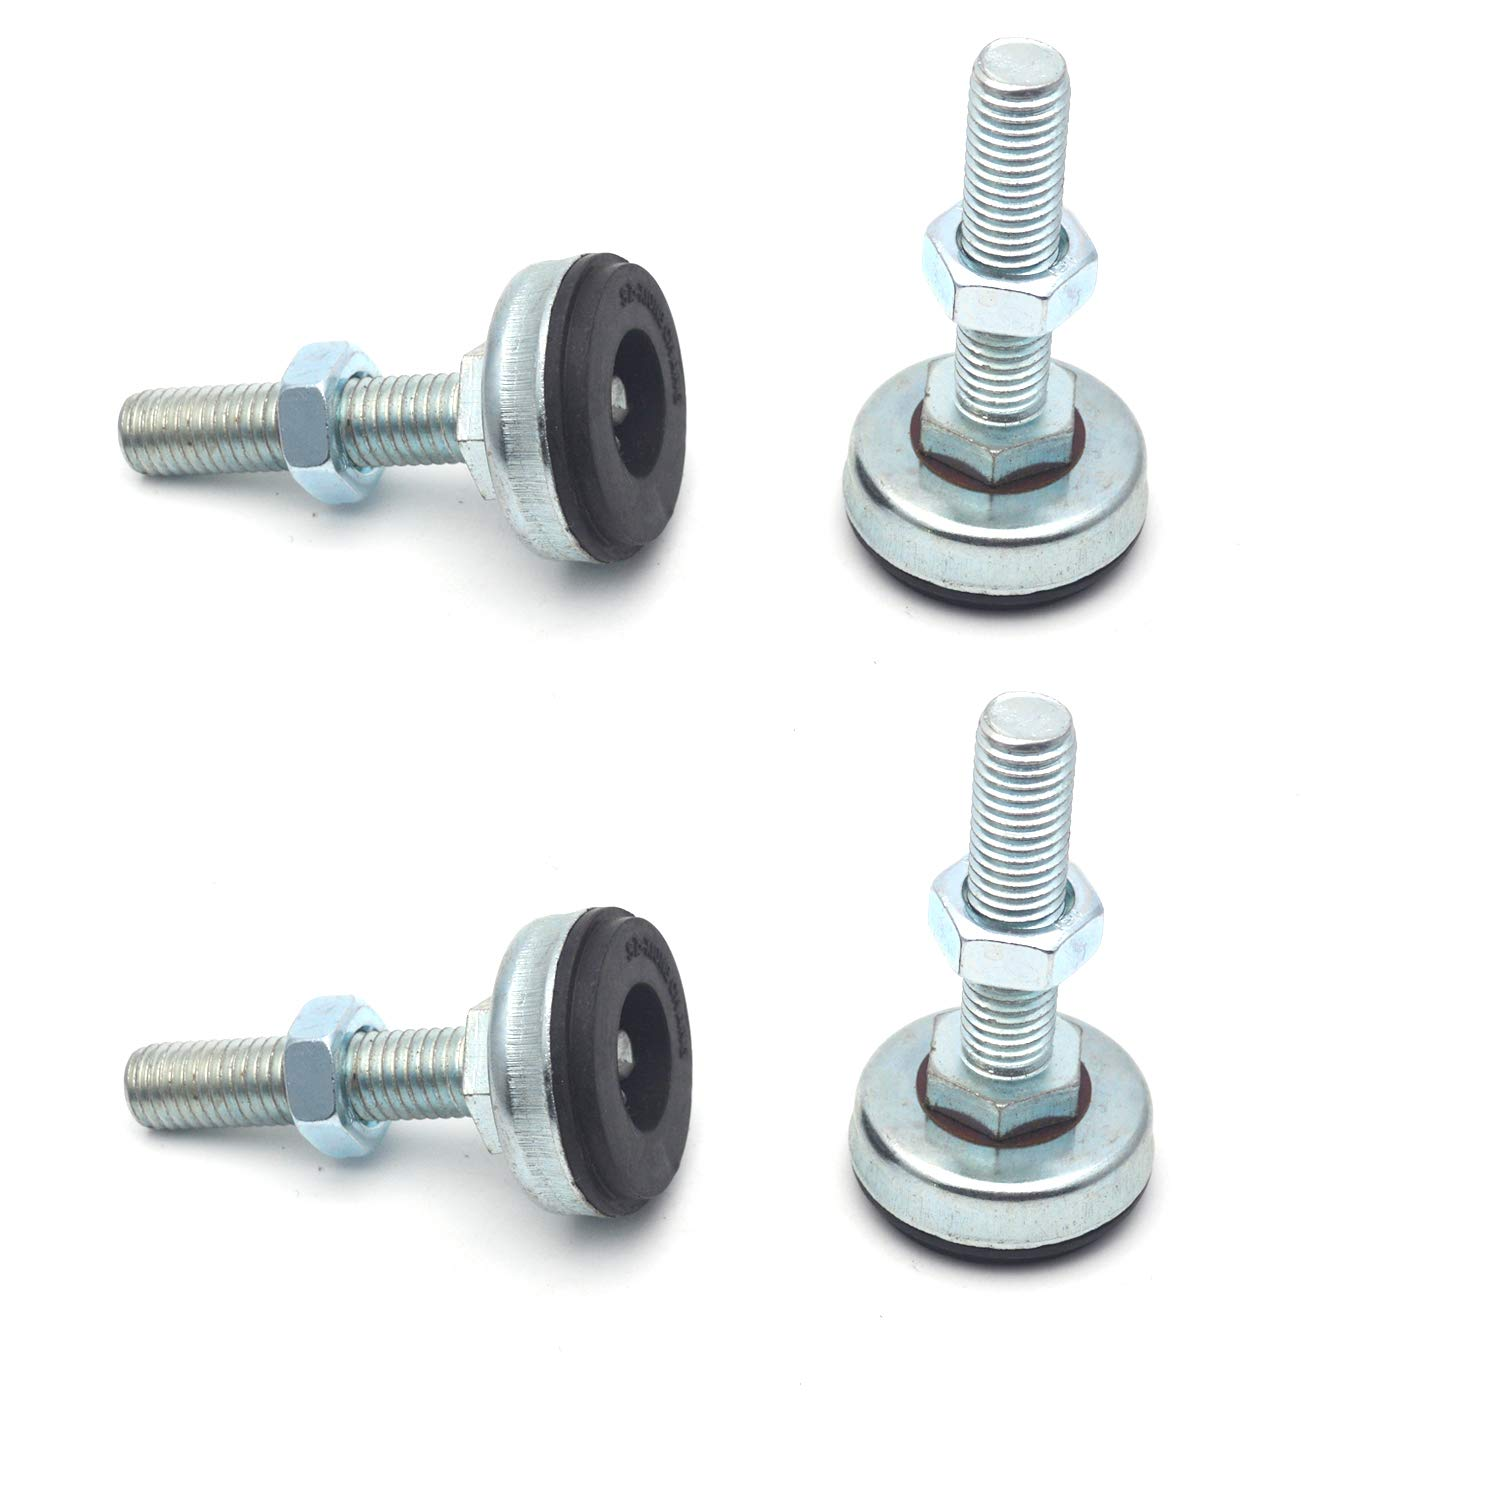 Antrader 4PCS M12 Thread Adjustable Pole Leveling Foot Carbon Steel Shockproof Self Leg Leveler - Base Diameter 1-3/5 Inch, 600 LB Capacity for Workbench, Machine, Cabinet & Heavy Duty Applications